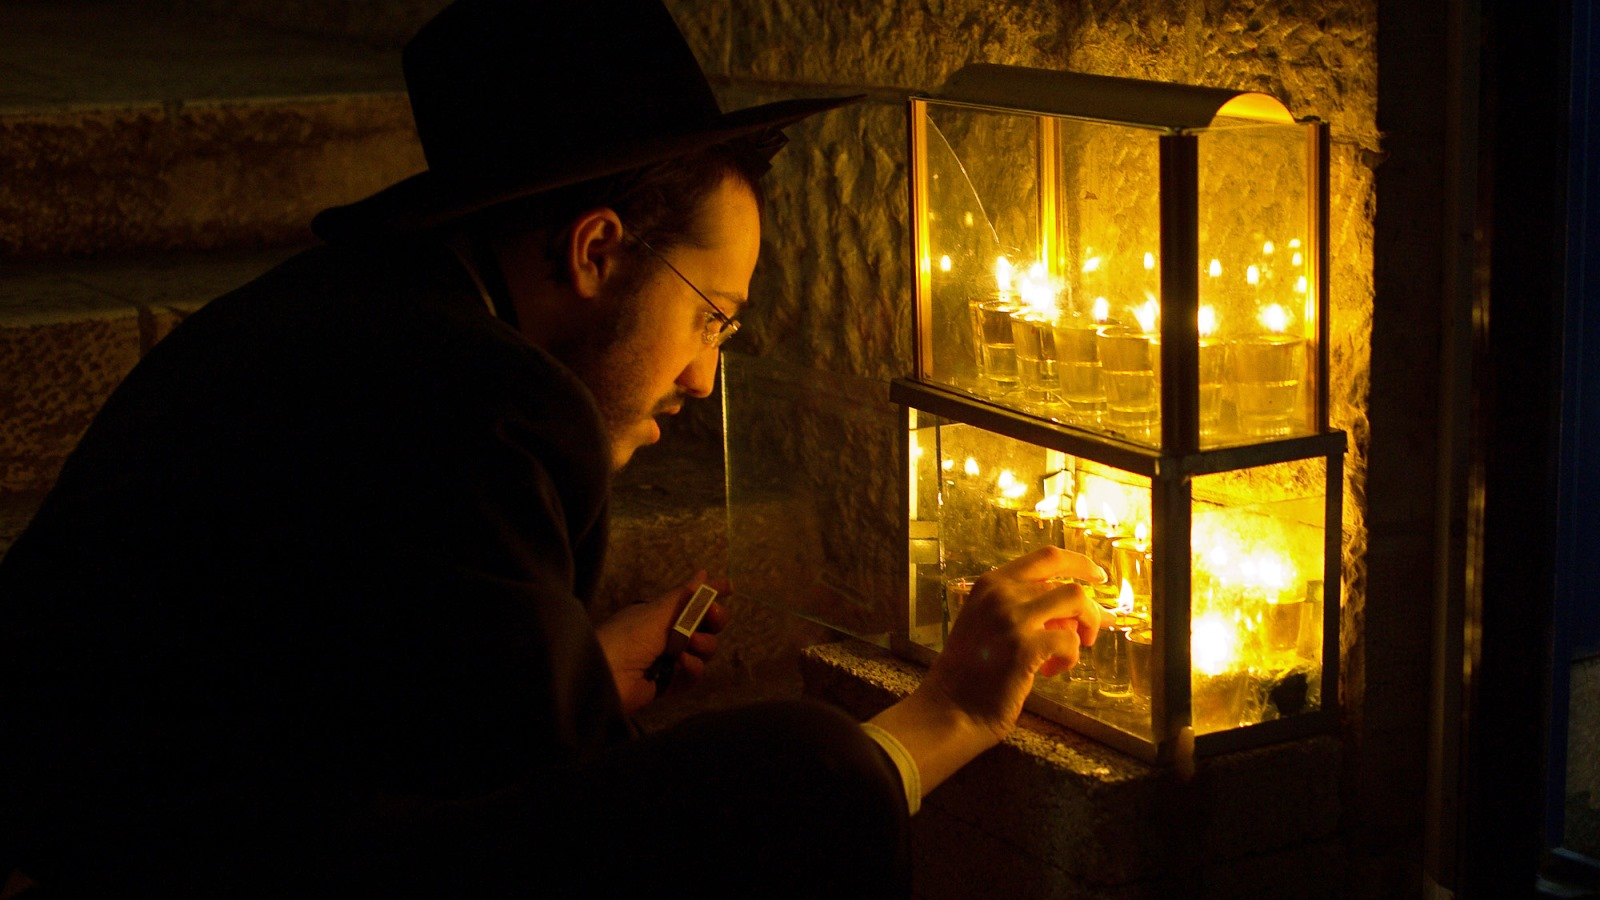 Jewish community at Penn State to 'increase the light' this Hanukkah